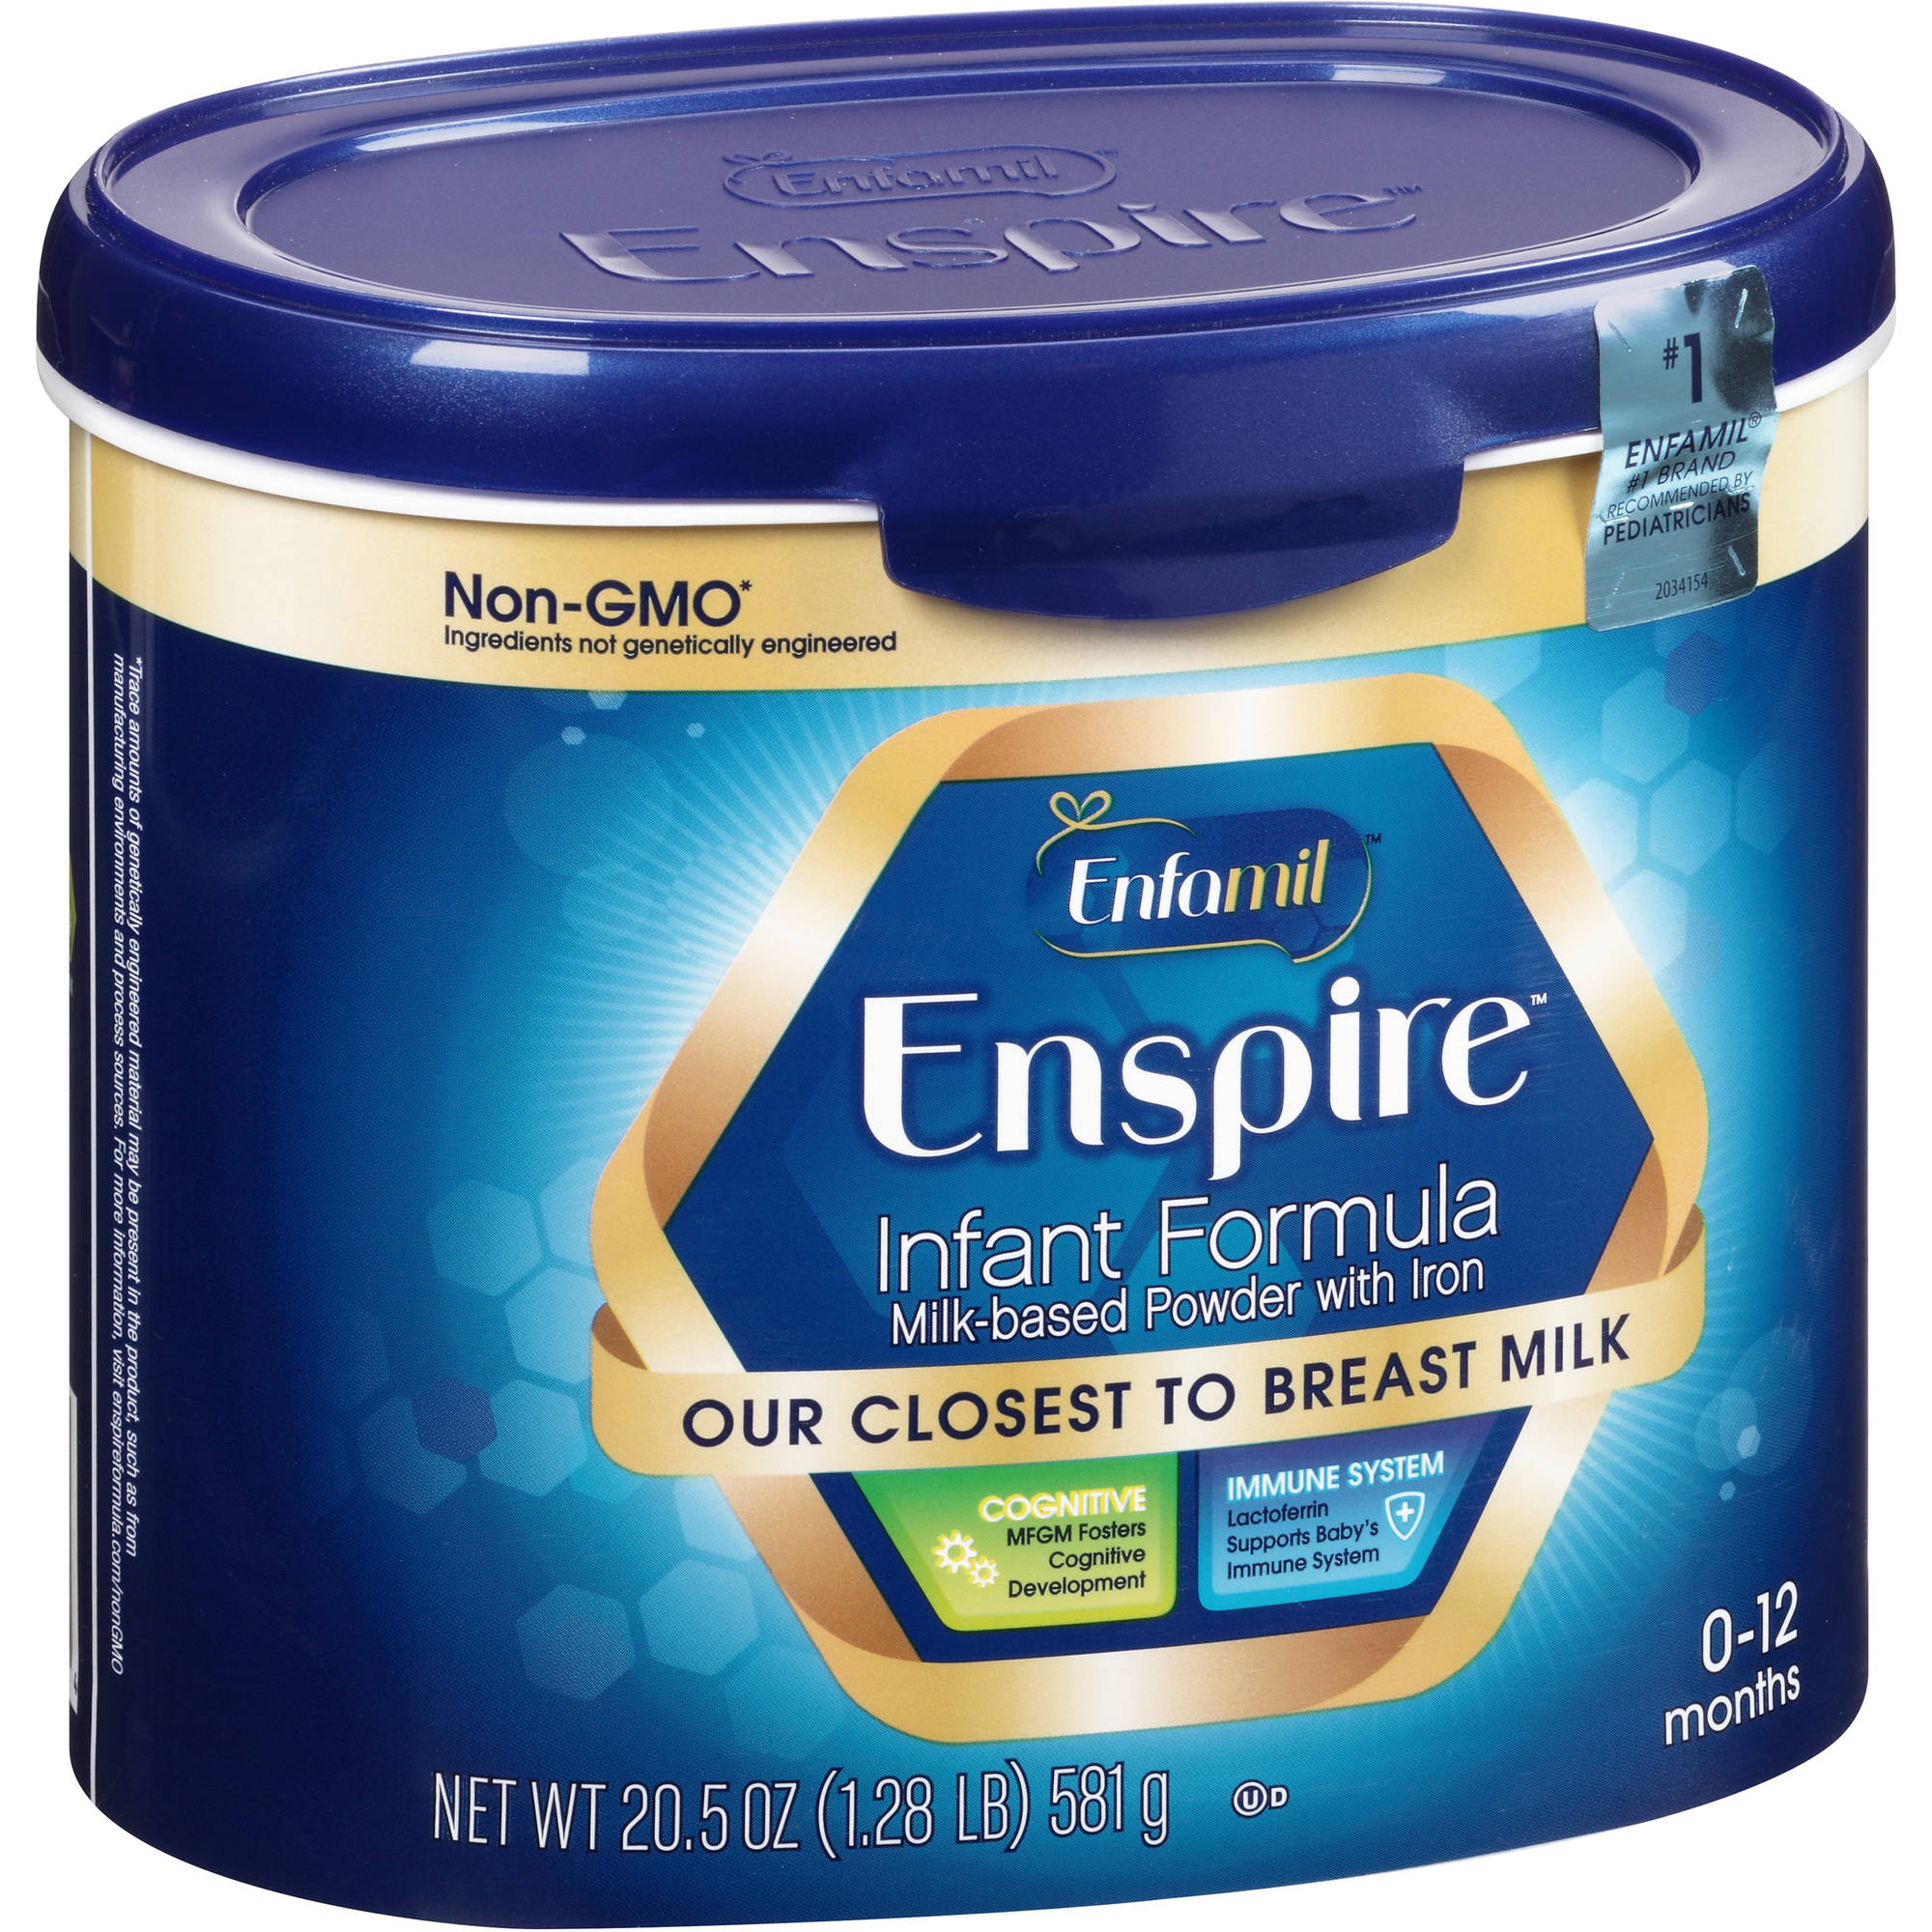 Enfamil Enspire Infant Formula Powder, 20.5 oz